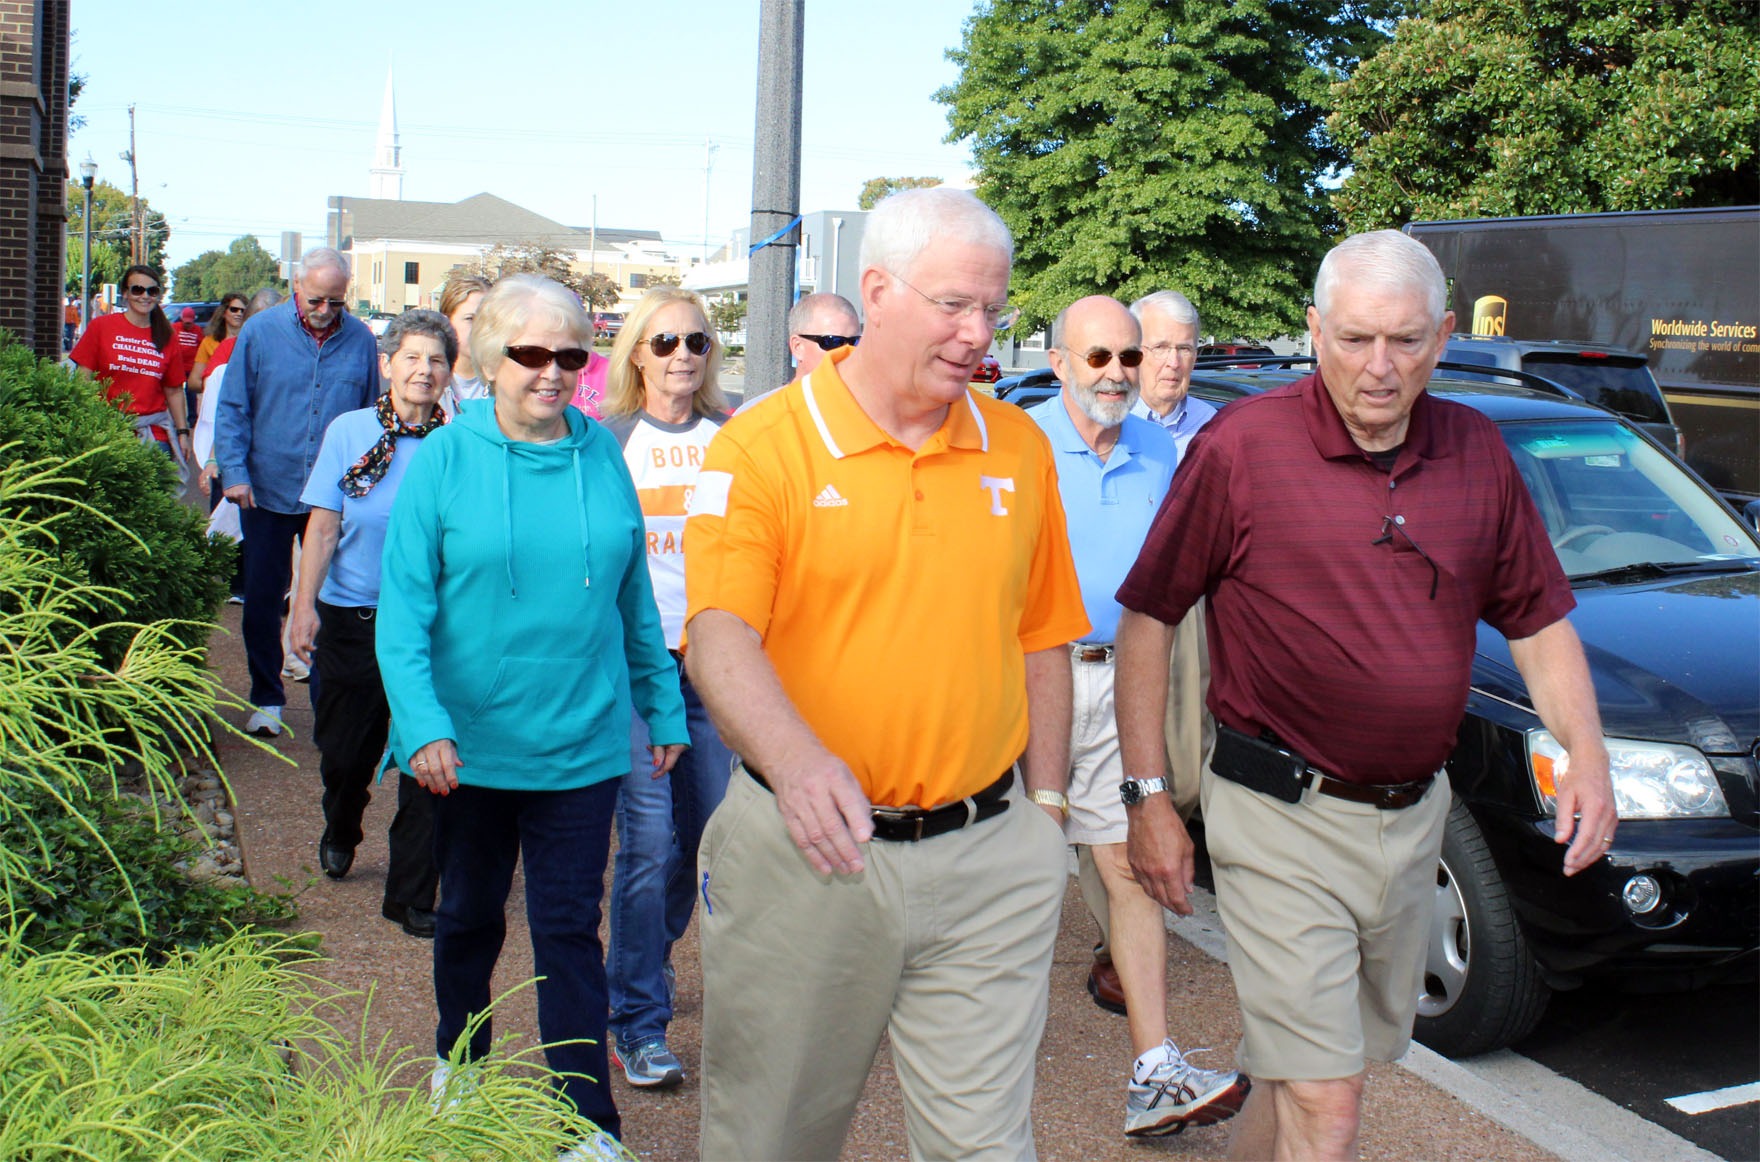 Mayors Bill Brittain and Gary Chesney lead the Mayors' Mile walk for brain health.